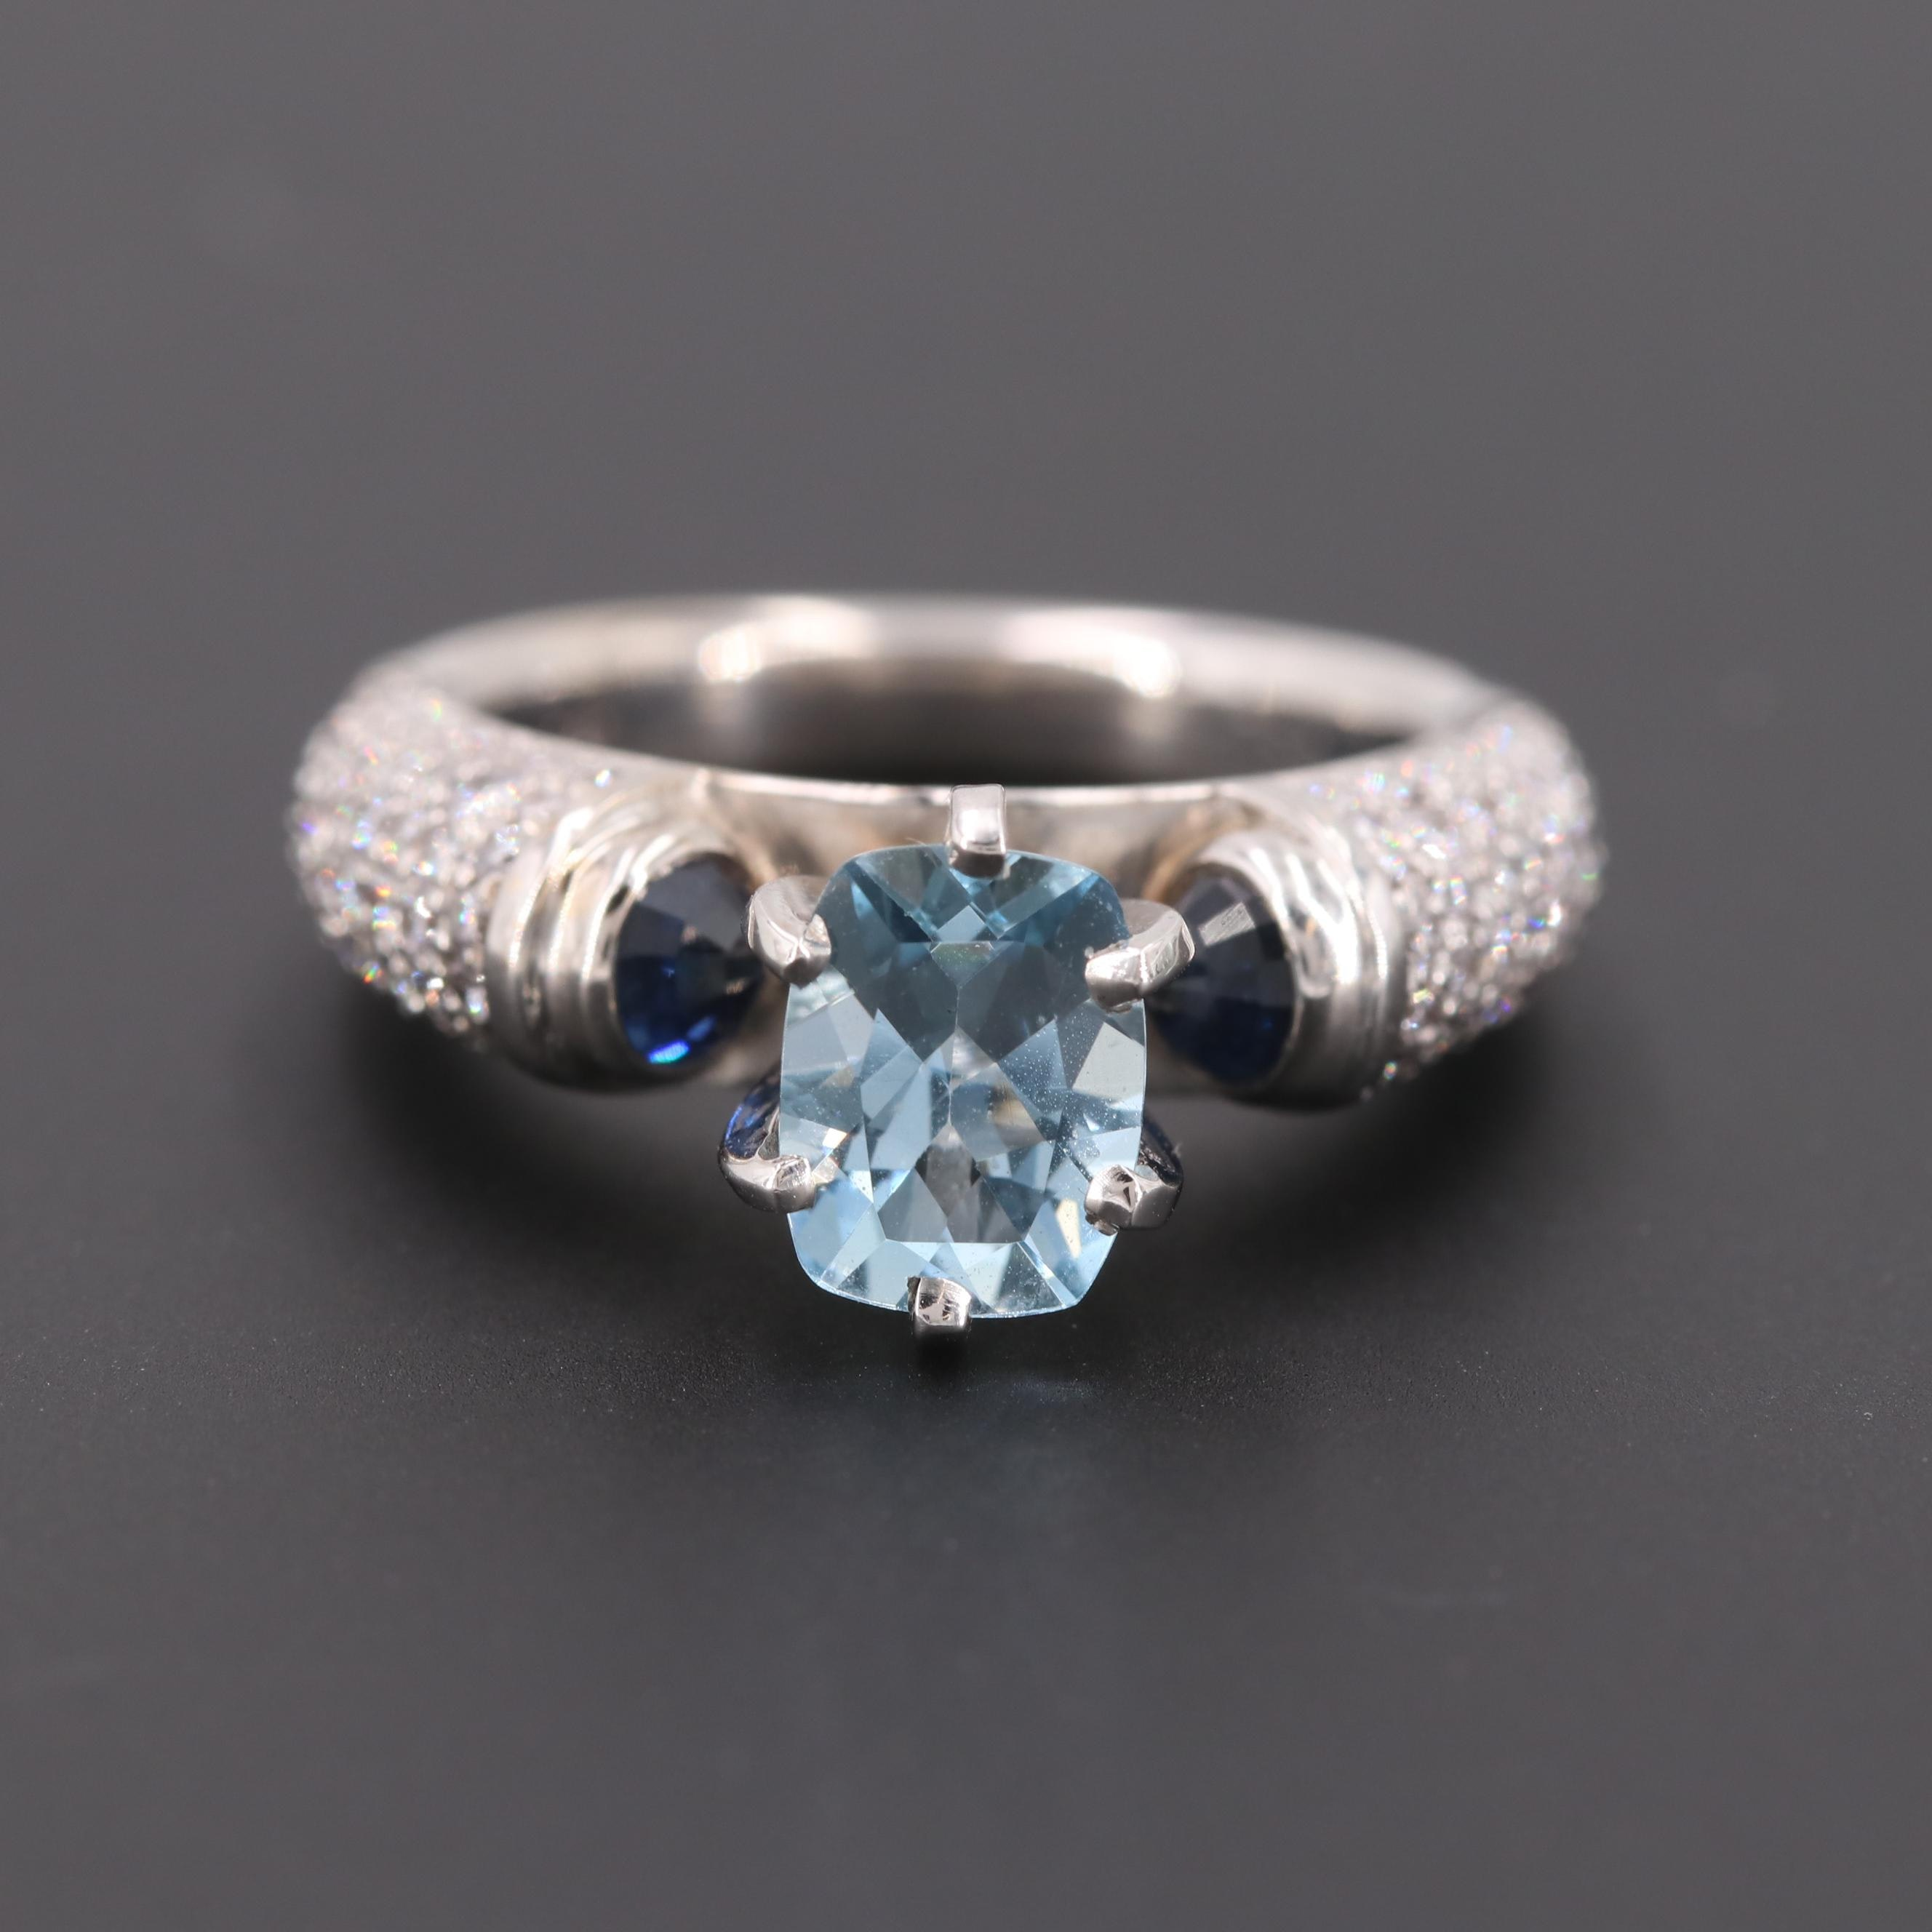 18K White Gold Aquamarine, Sapphire and 1.15 CTW Diamond Ring